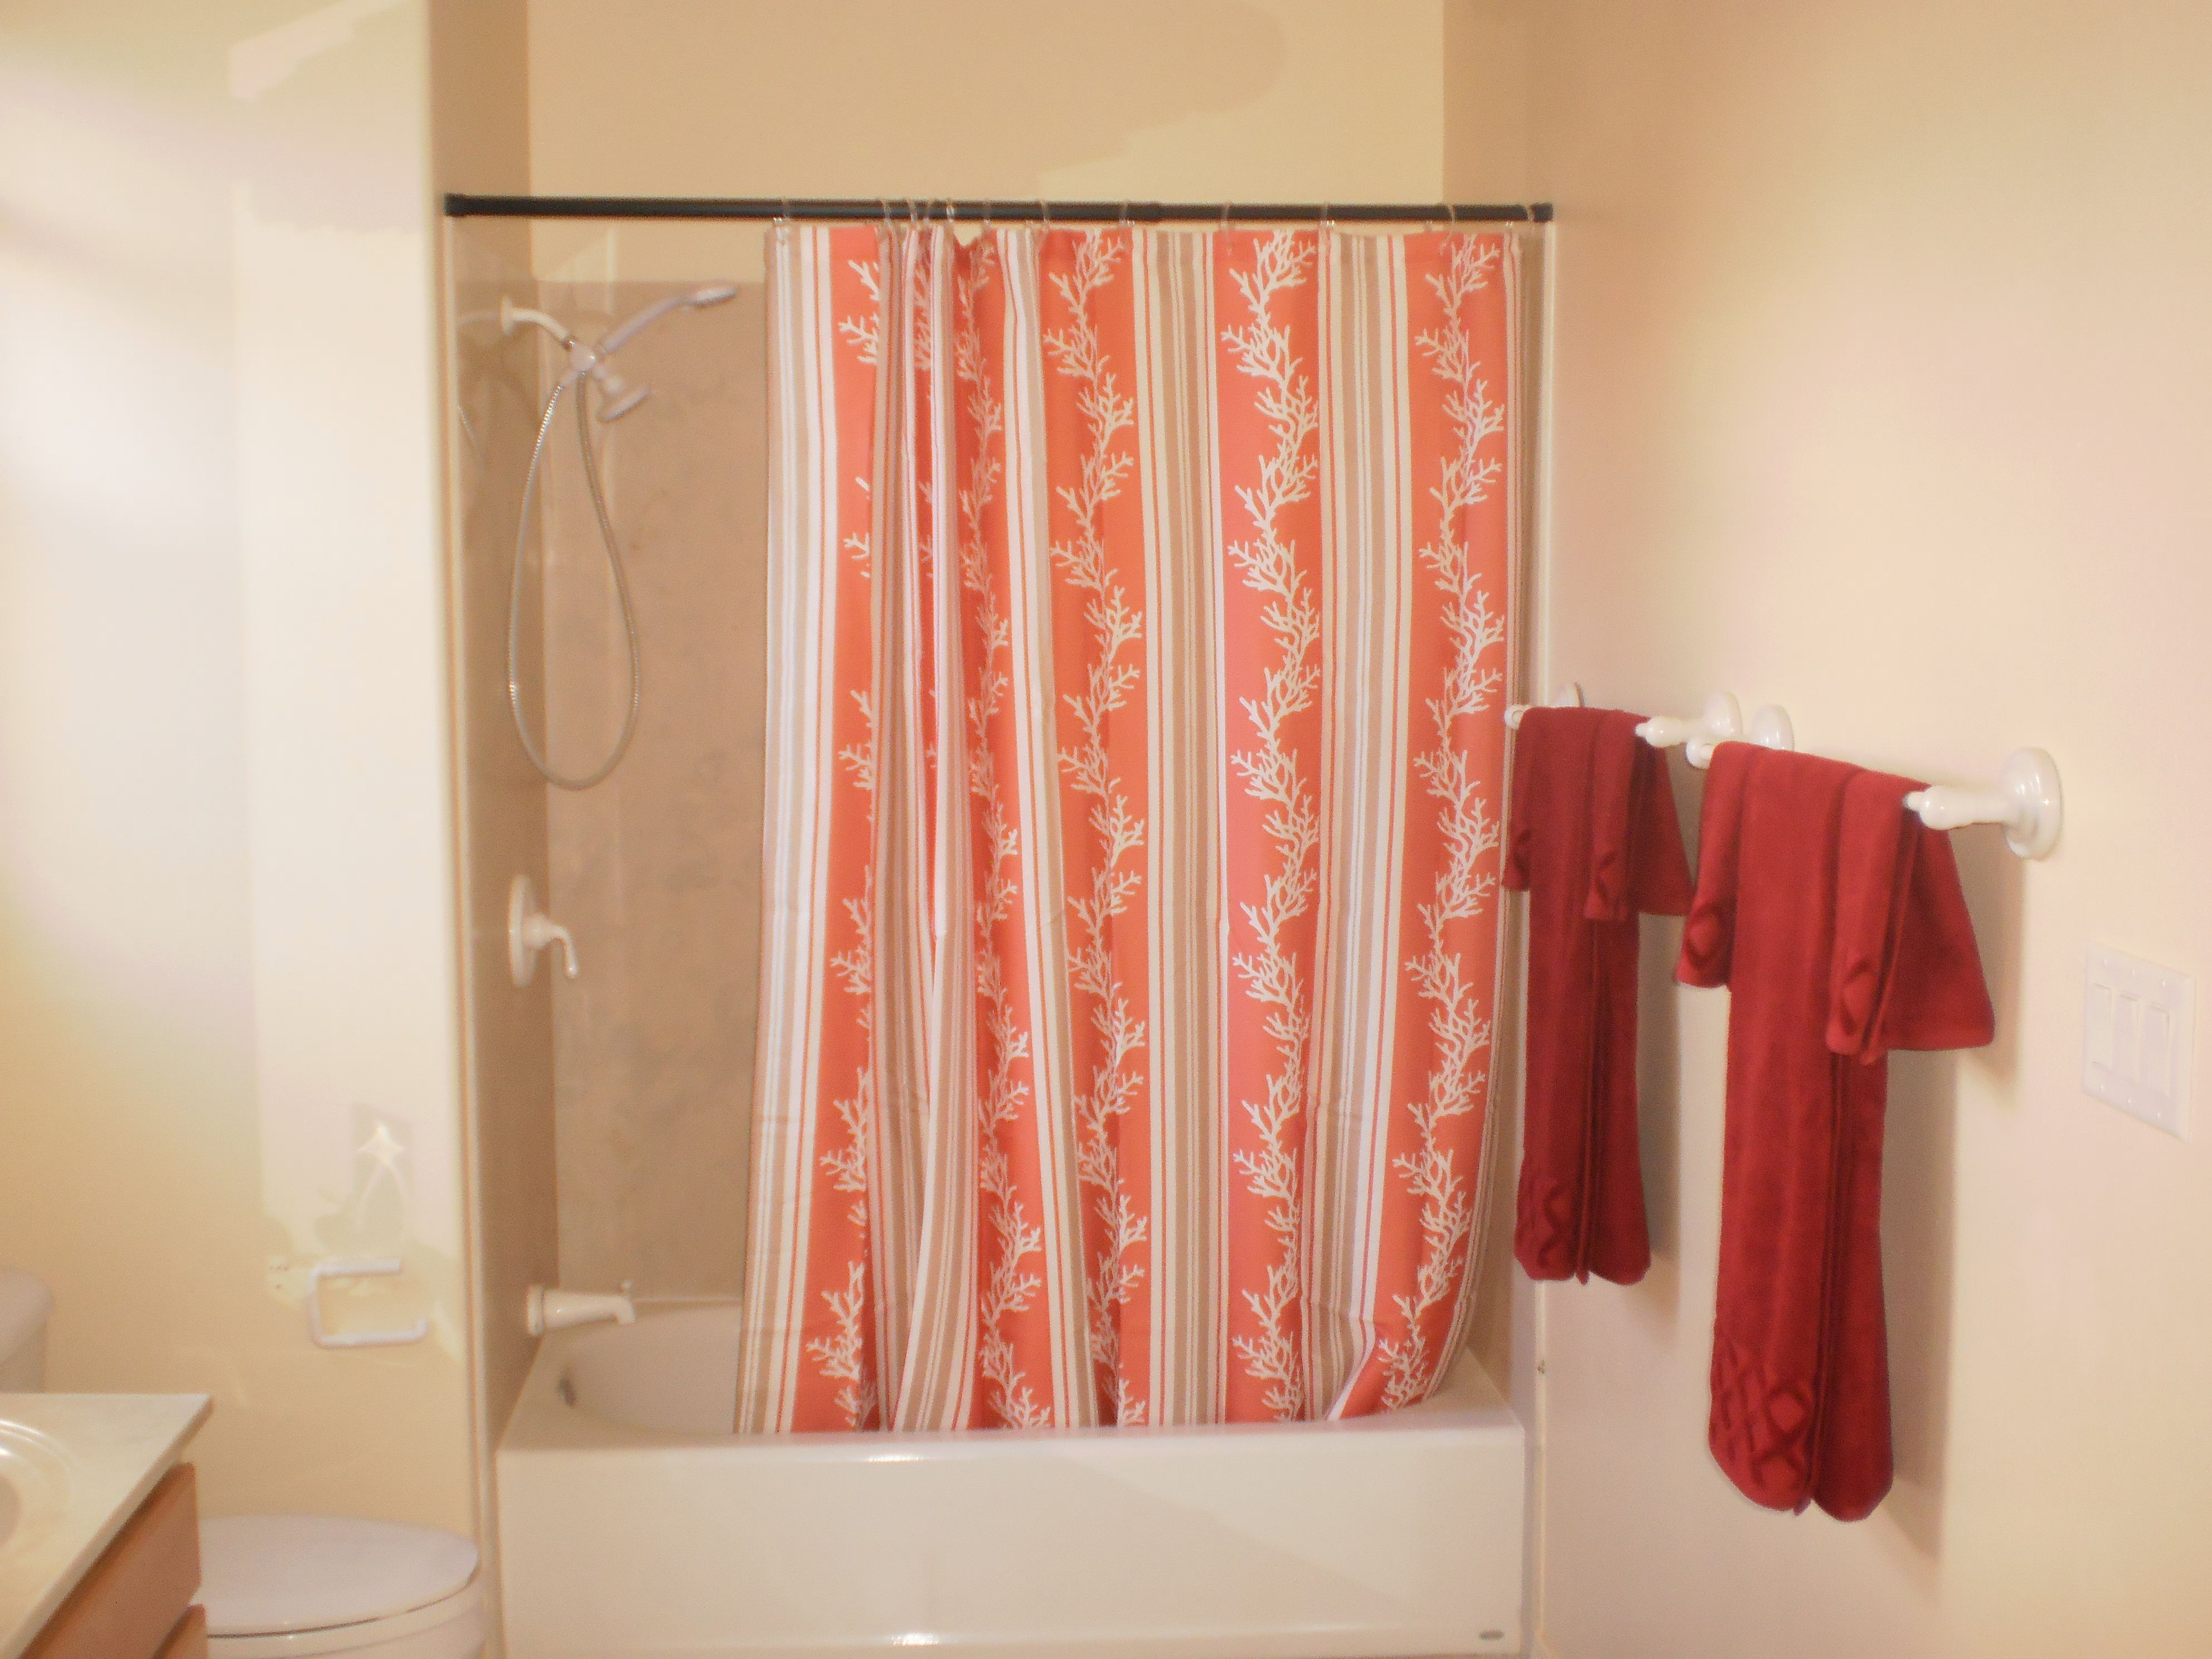 Upstairs hall bathroom sold days after staging banked owned